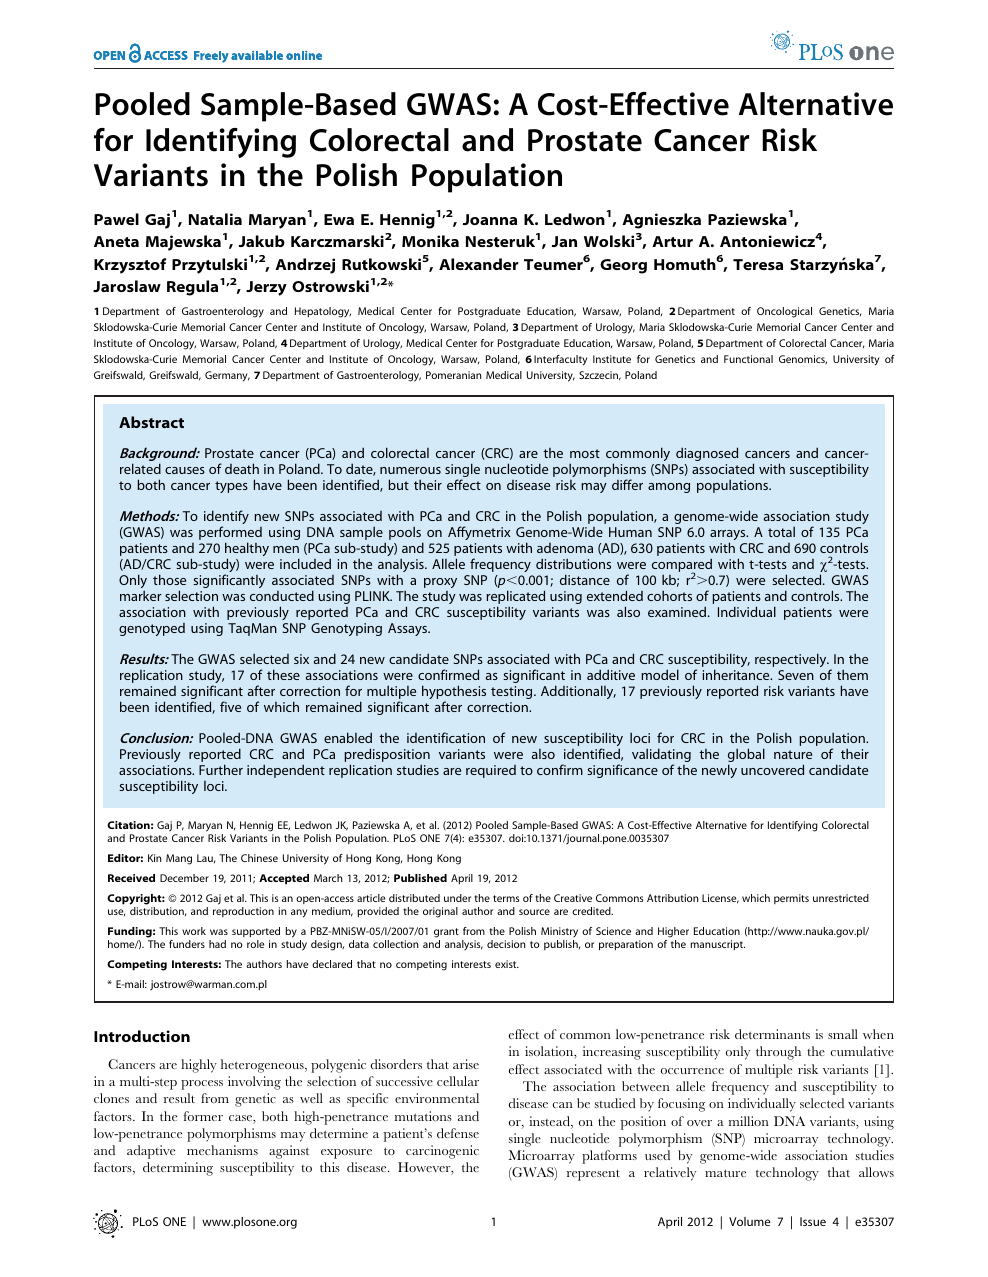 Pooled Sample Based Gwas A Cost Effective Alternative For Identifying Colorectal And Prostate Cancer Risk Variants In The Polish Population Topic Of Research Paper In Biological Sciences Download Scholarly Article Pdf And Read